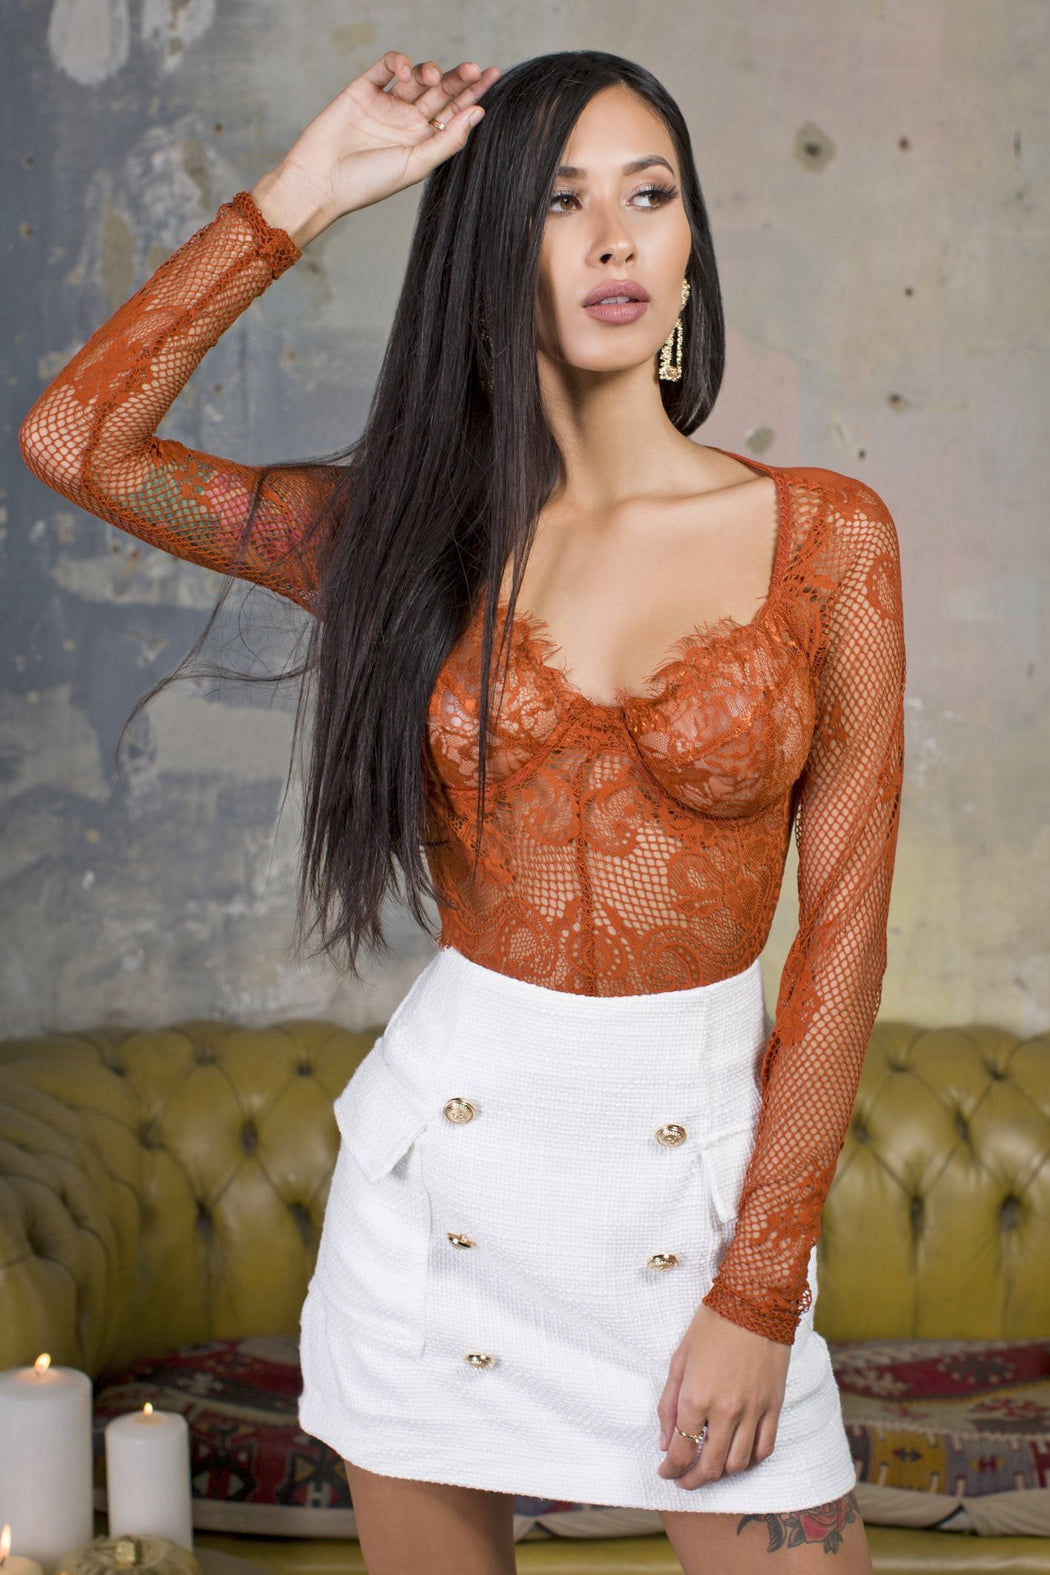 Off-Duty Lace Burnt Orange Bodysuit